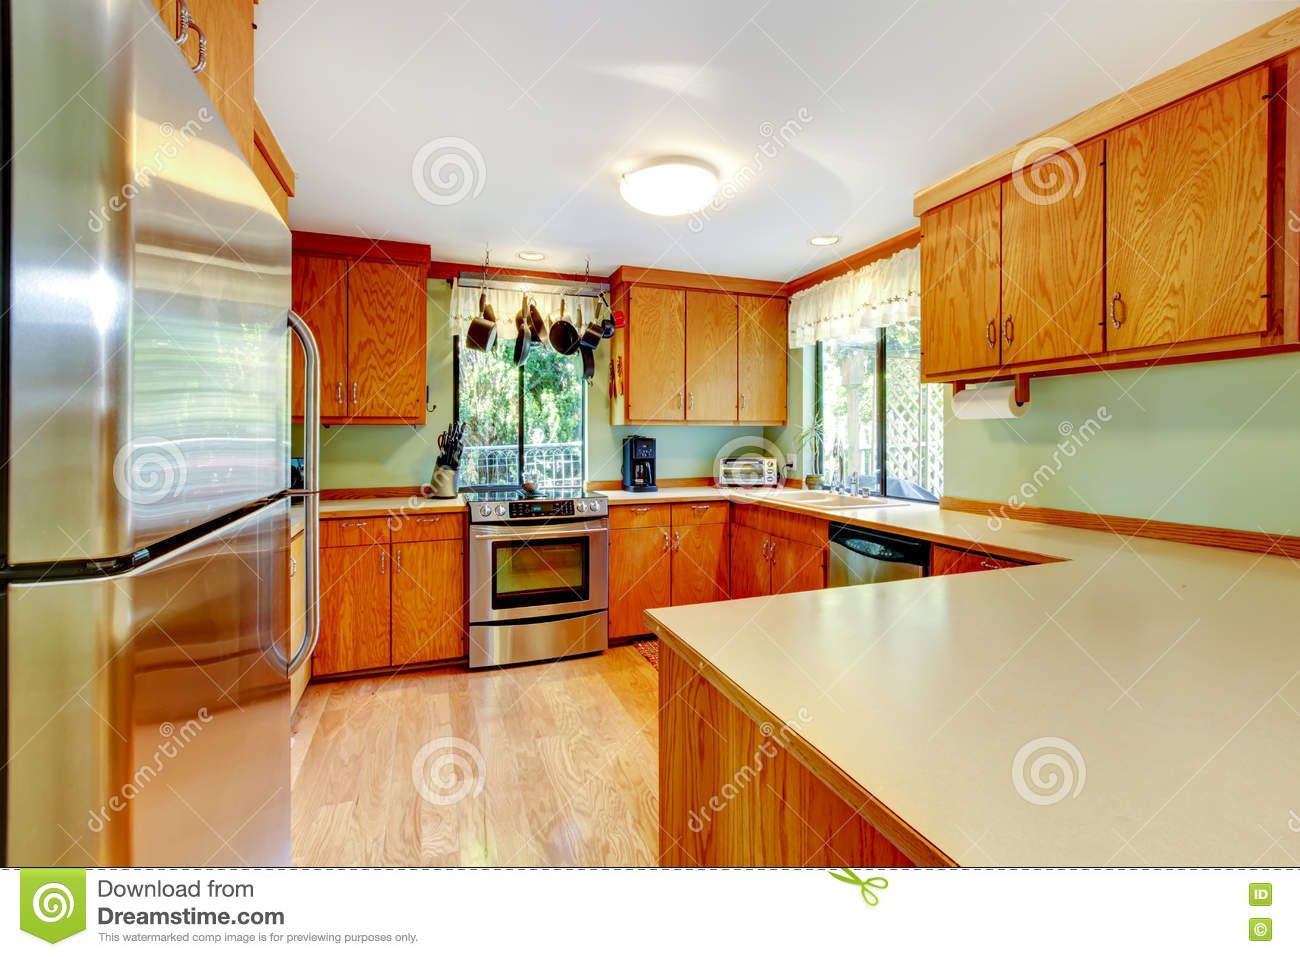 bright kitchen with light brown cabinets and wooden counter tops stock image image of home. Black Bedroom Furniture Sets. Home Design Ideas